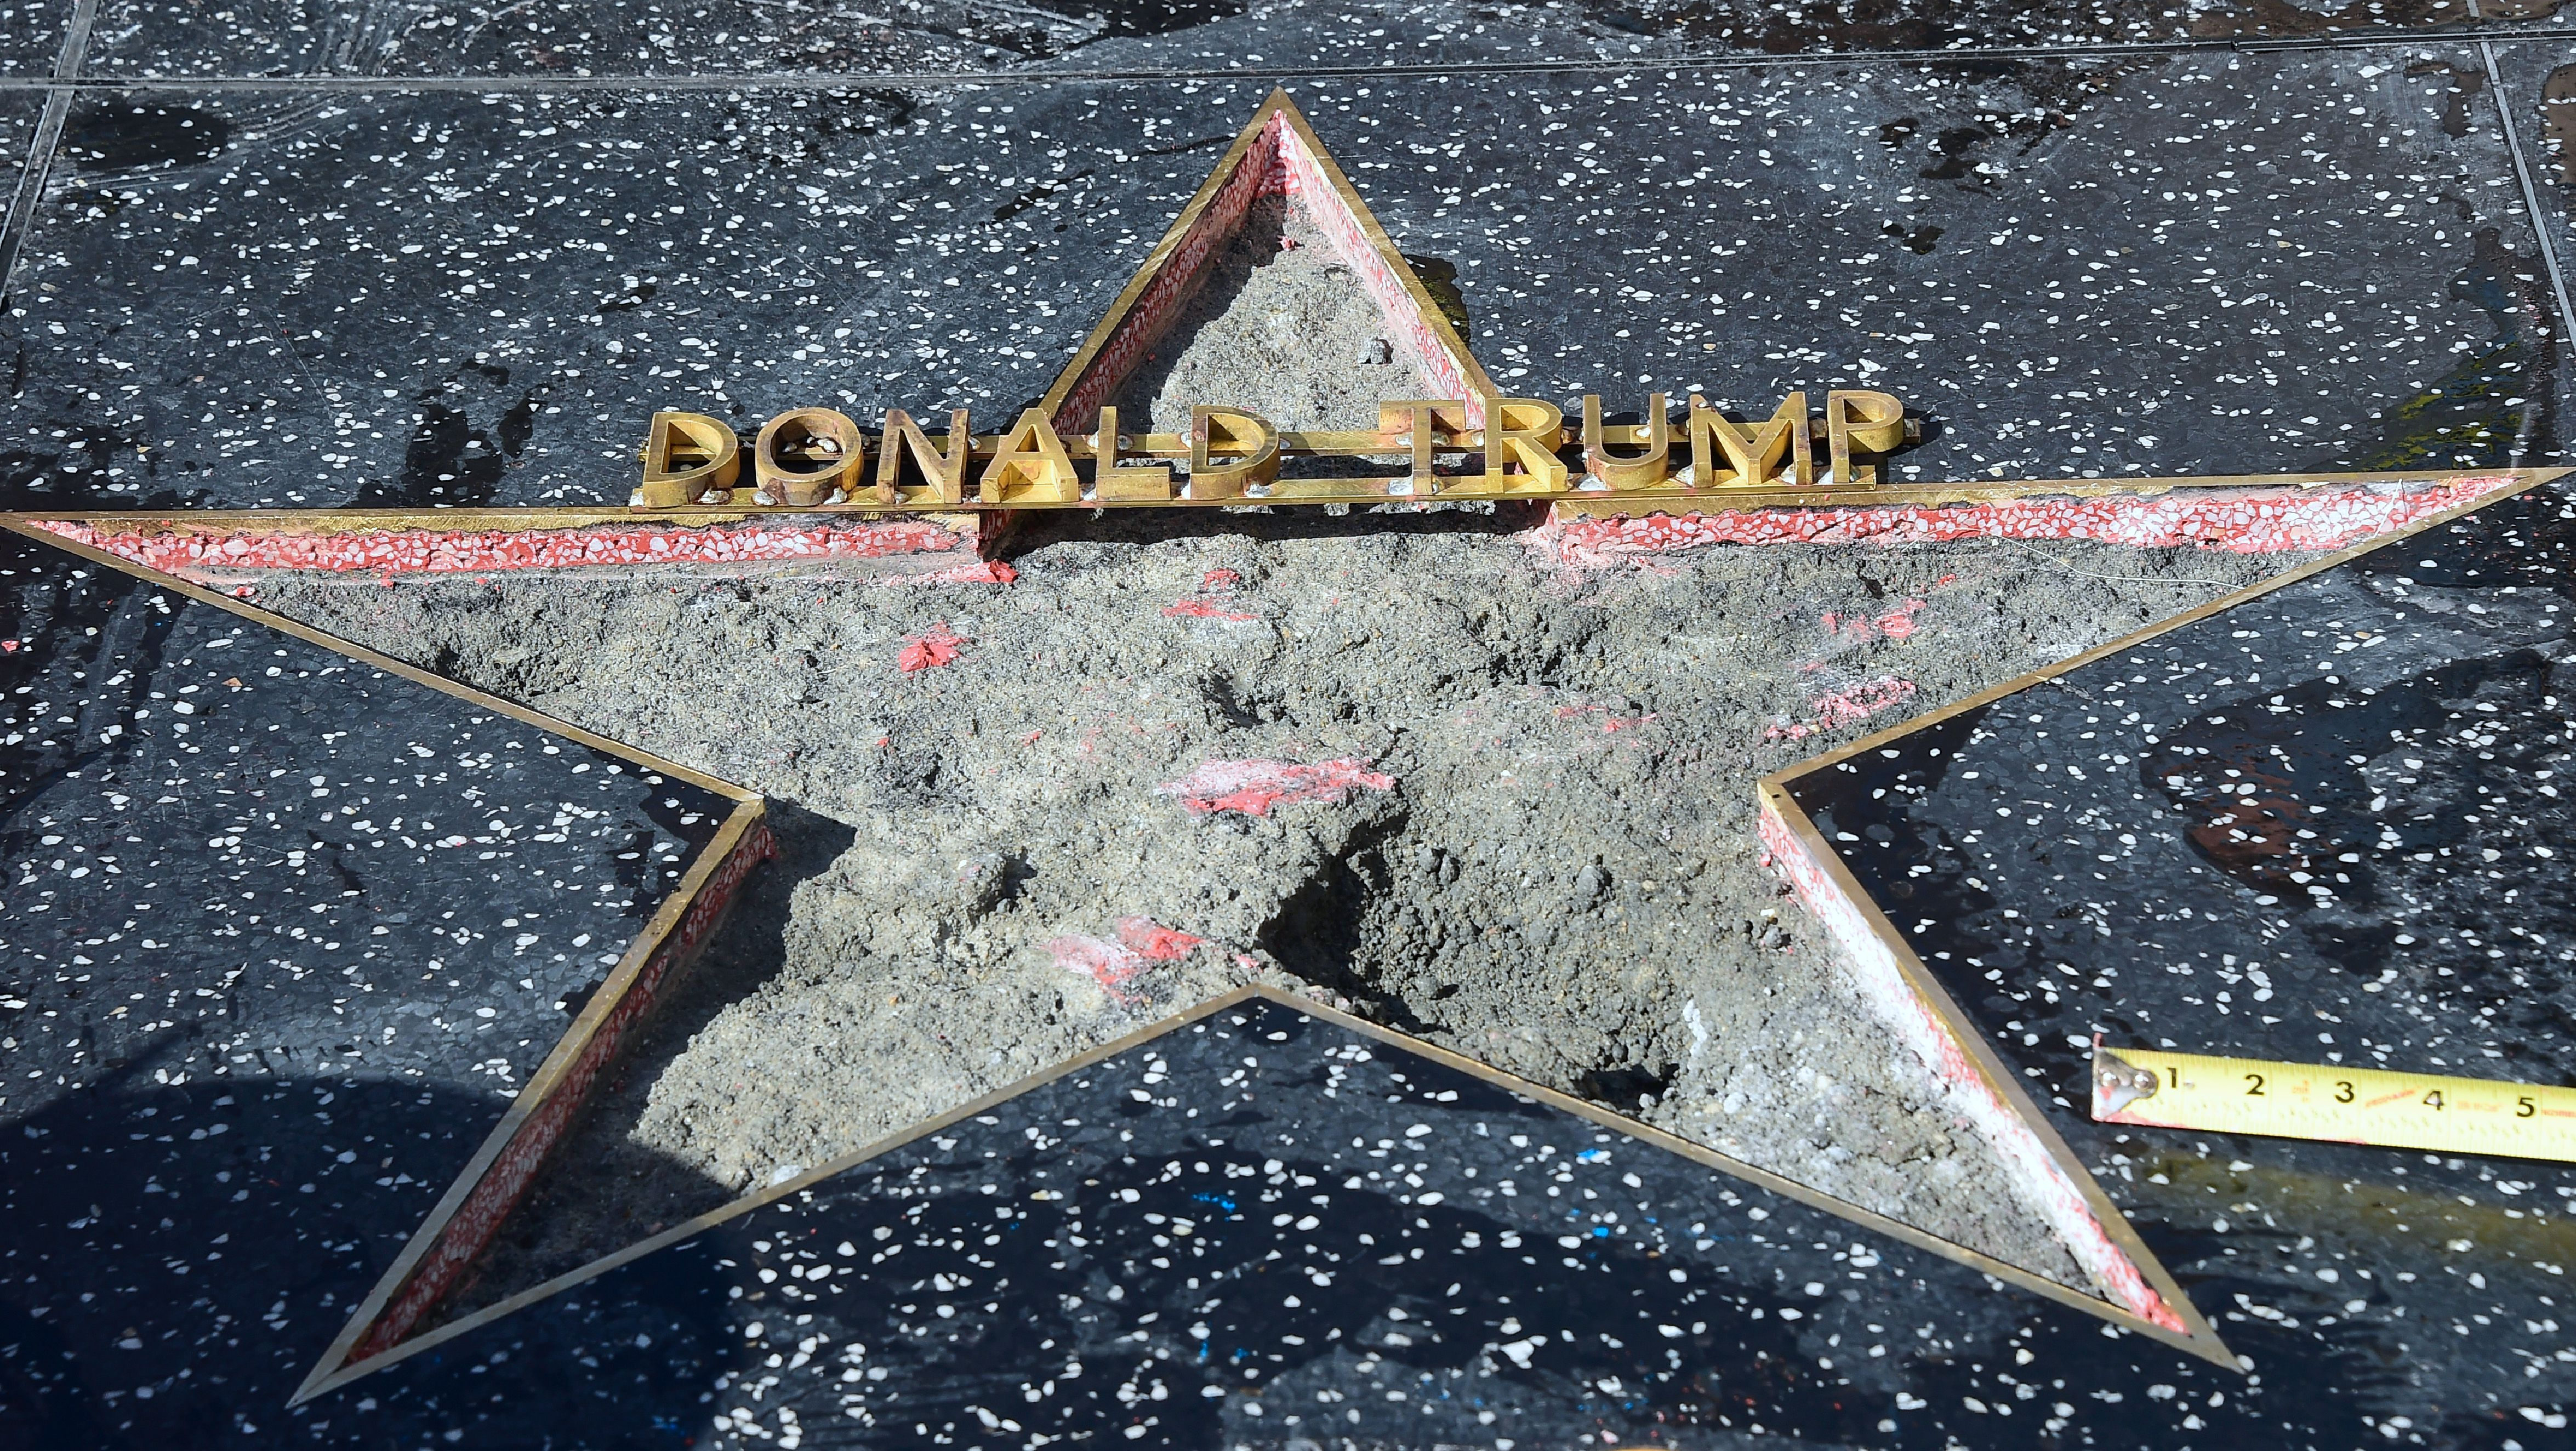 West Hollywood City Council Passes Resolution Asking The Hollywood Chamber Of Commerce To Remove Donald Trump's Star On The Hollywood Walk of Fame